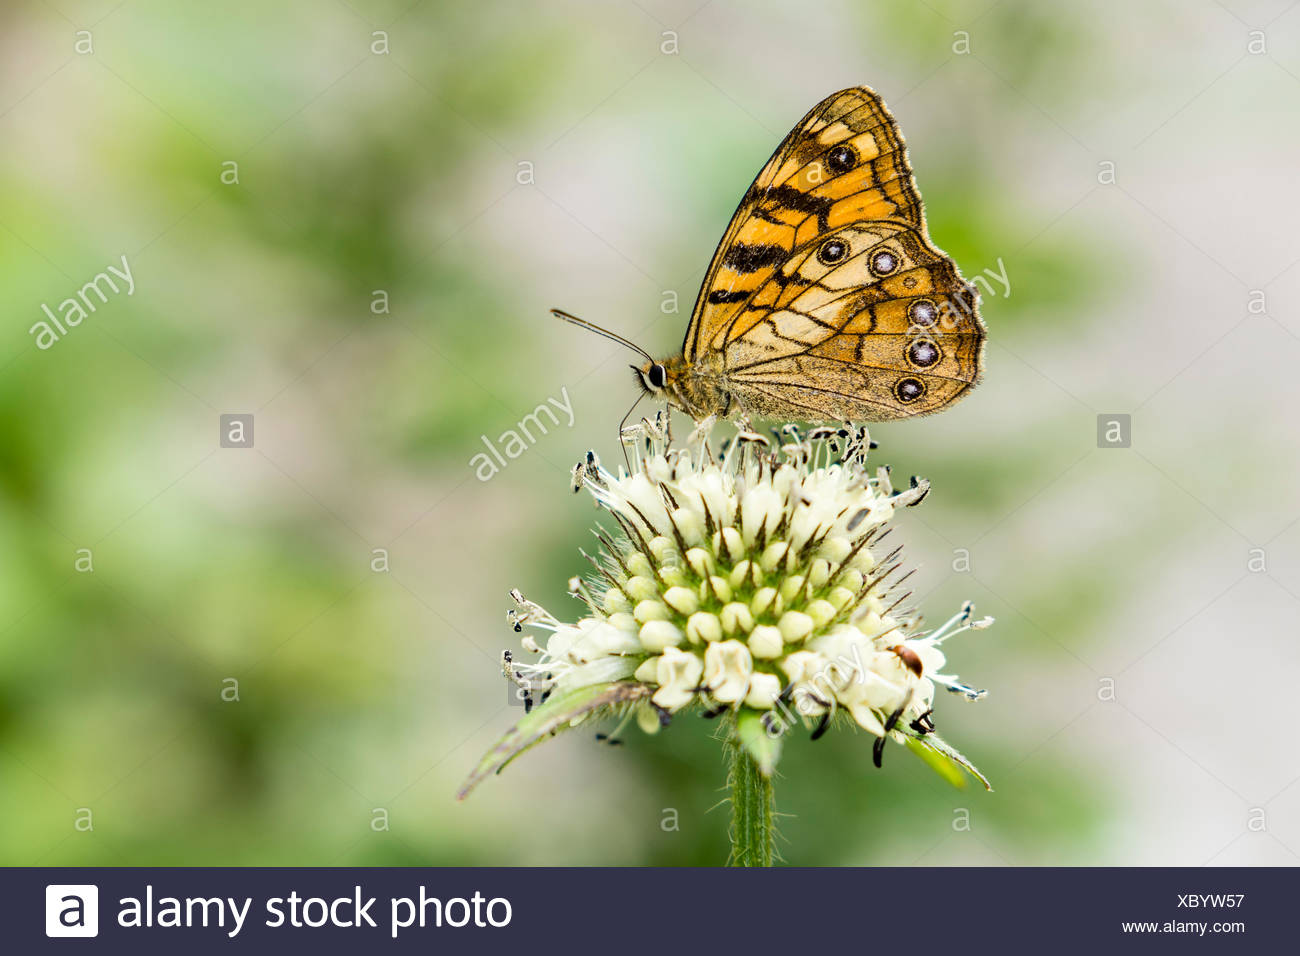 A yellow butterfly is siting on a white flower, Lower Pisang, Manang District, Nepal - Stock Image